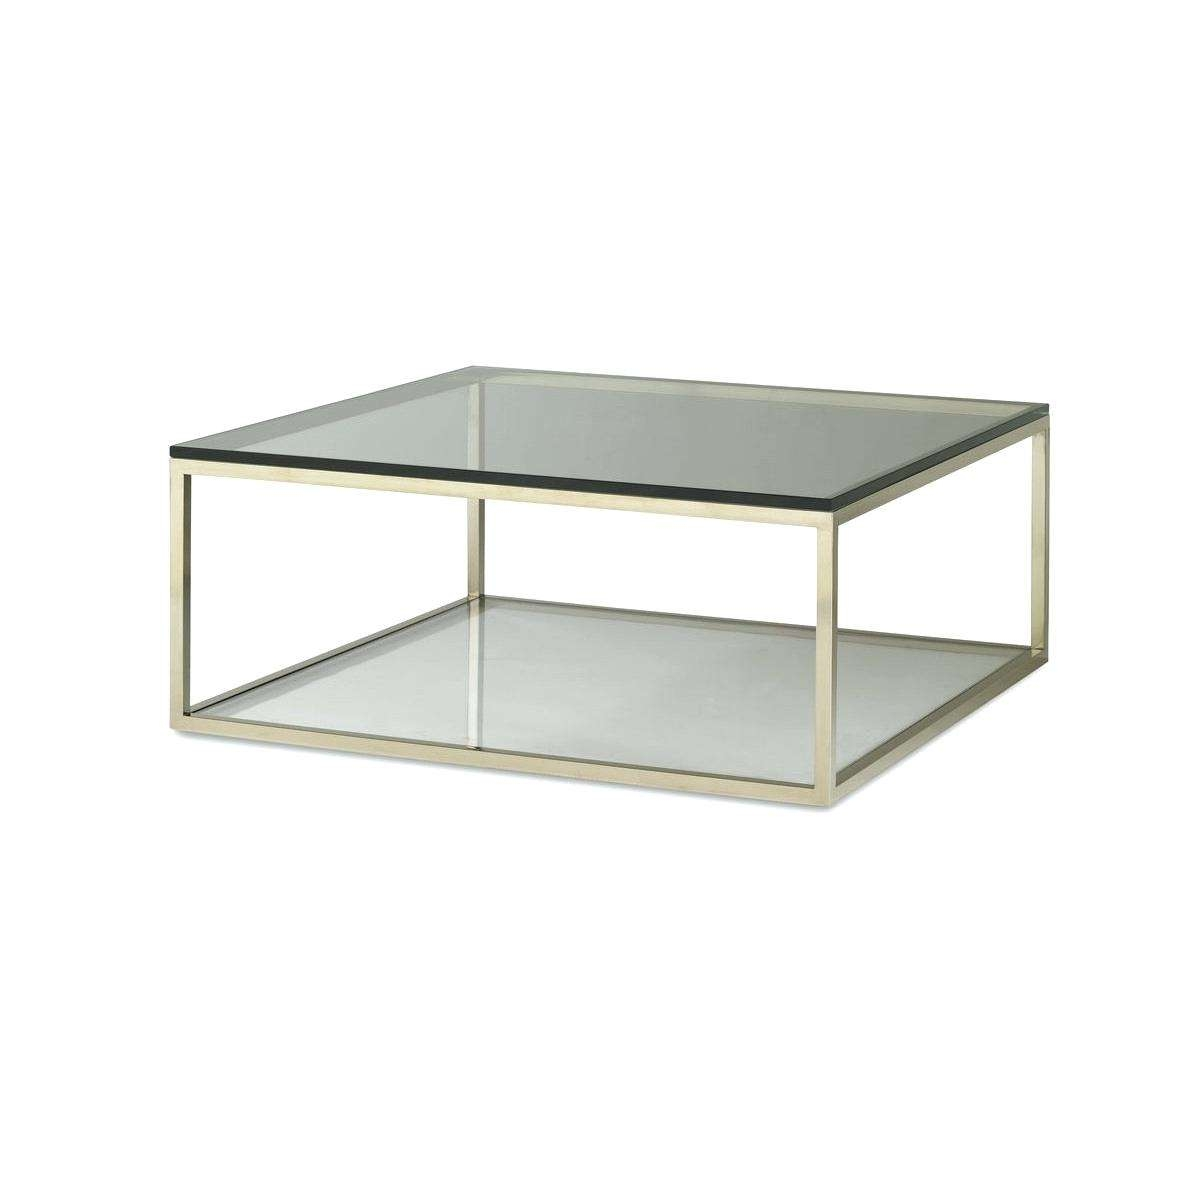 Newest Simple Glass Coffee Tables For Thewkndedit (View 15 of 20)